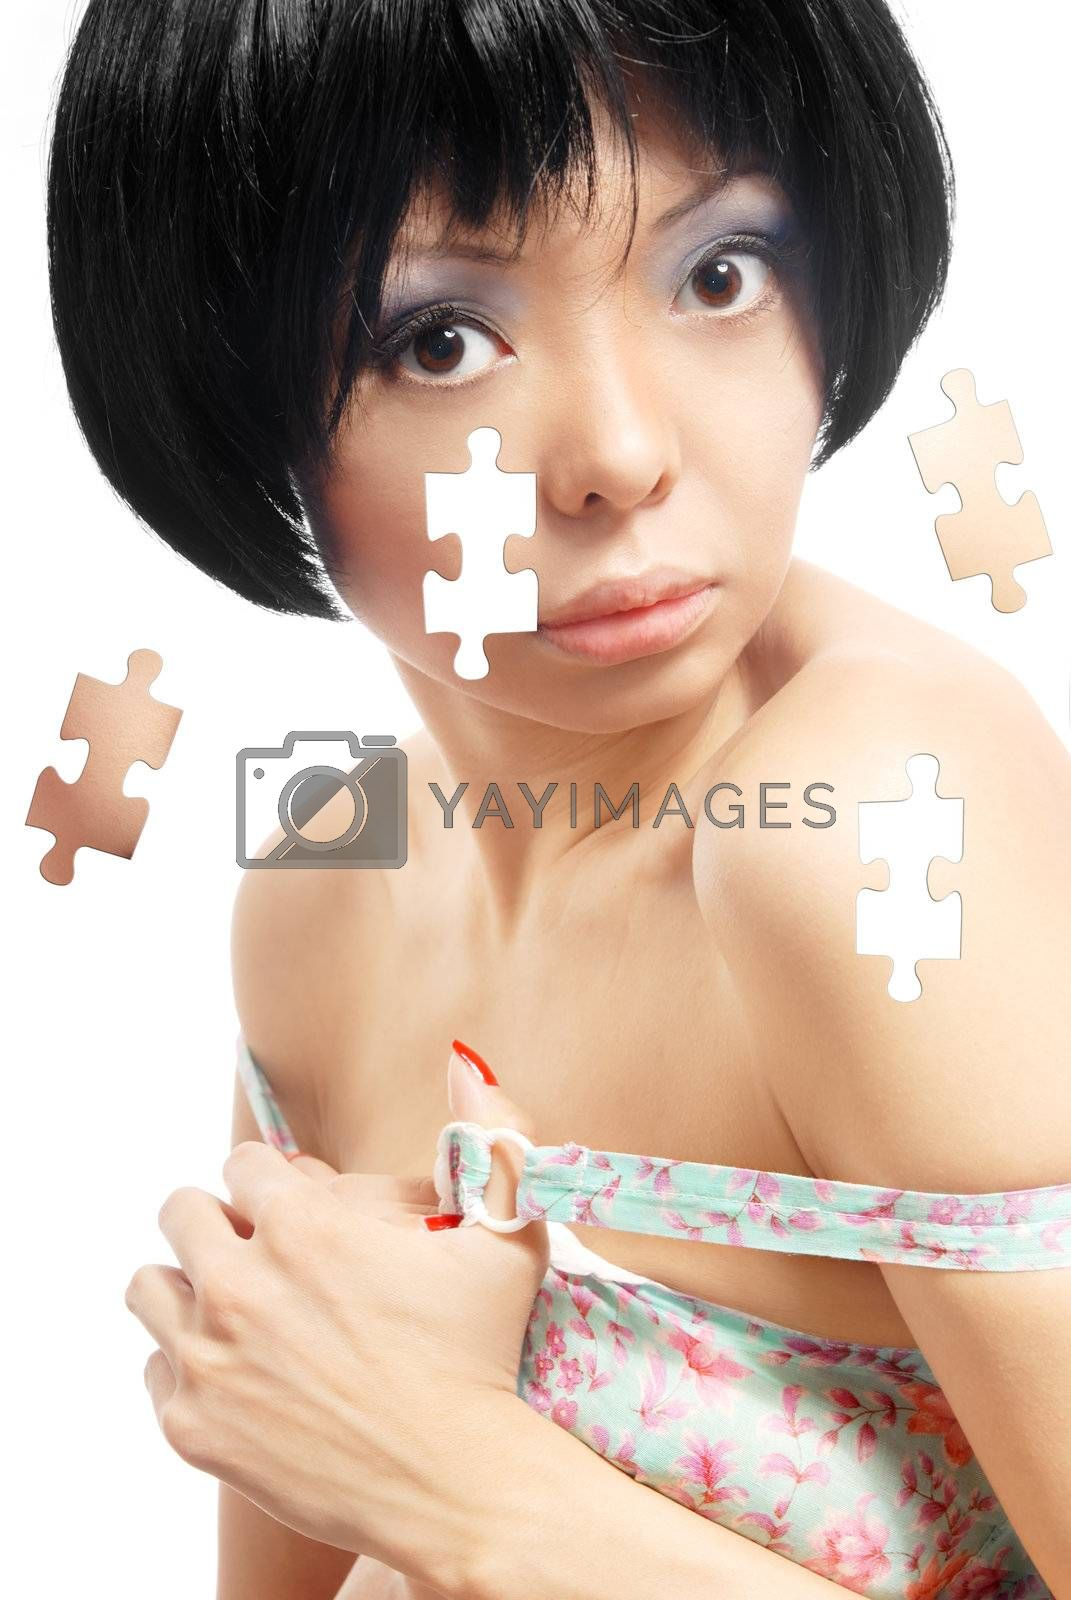 Sensual photo of the model with puzzle effect on her skin